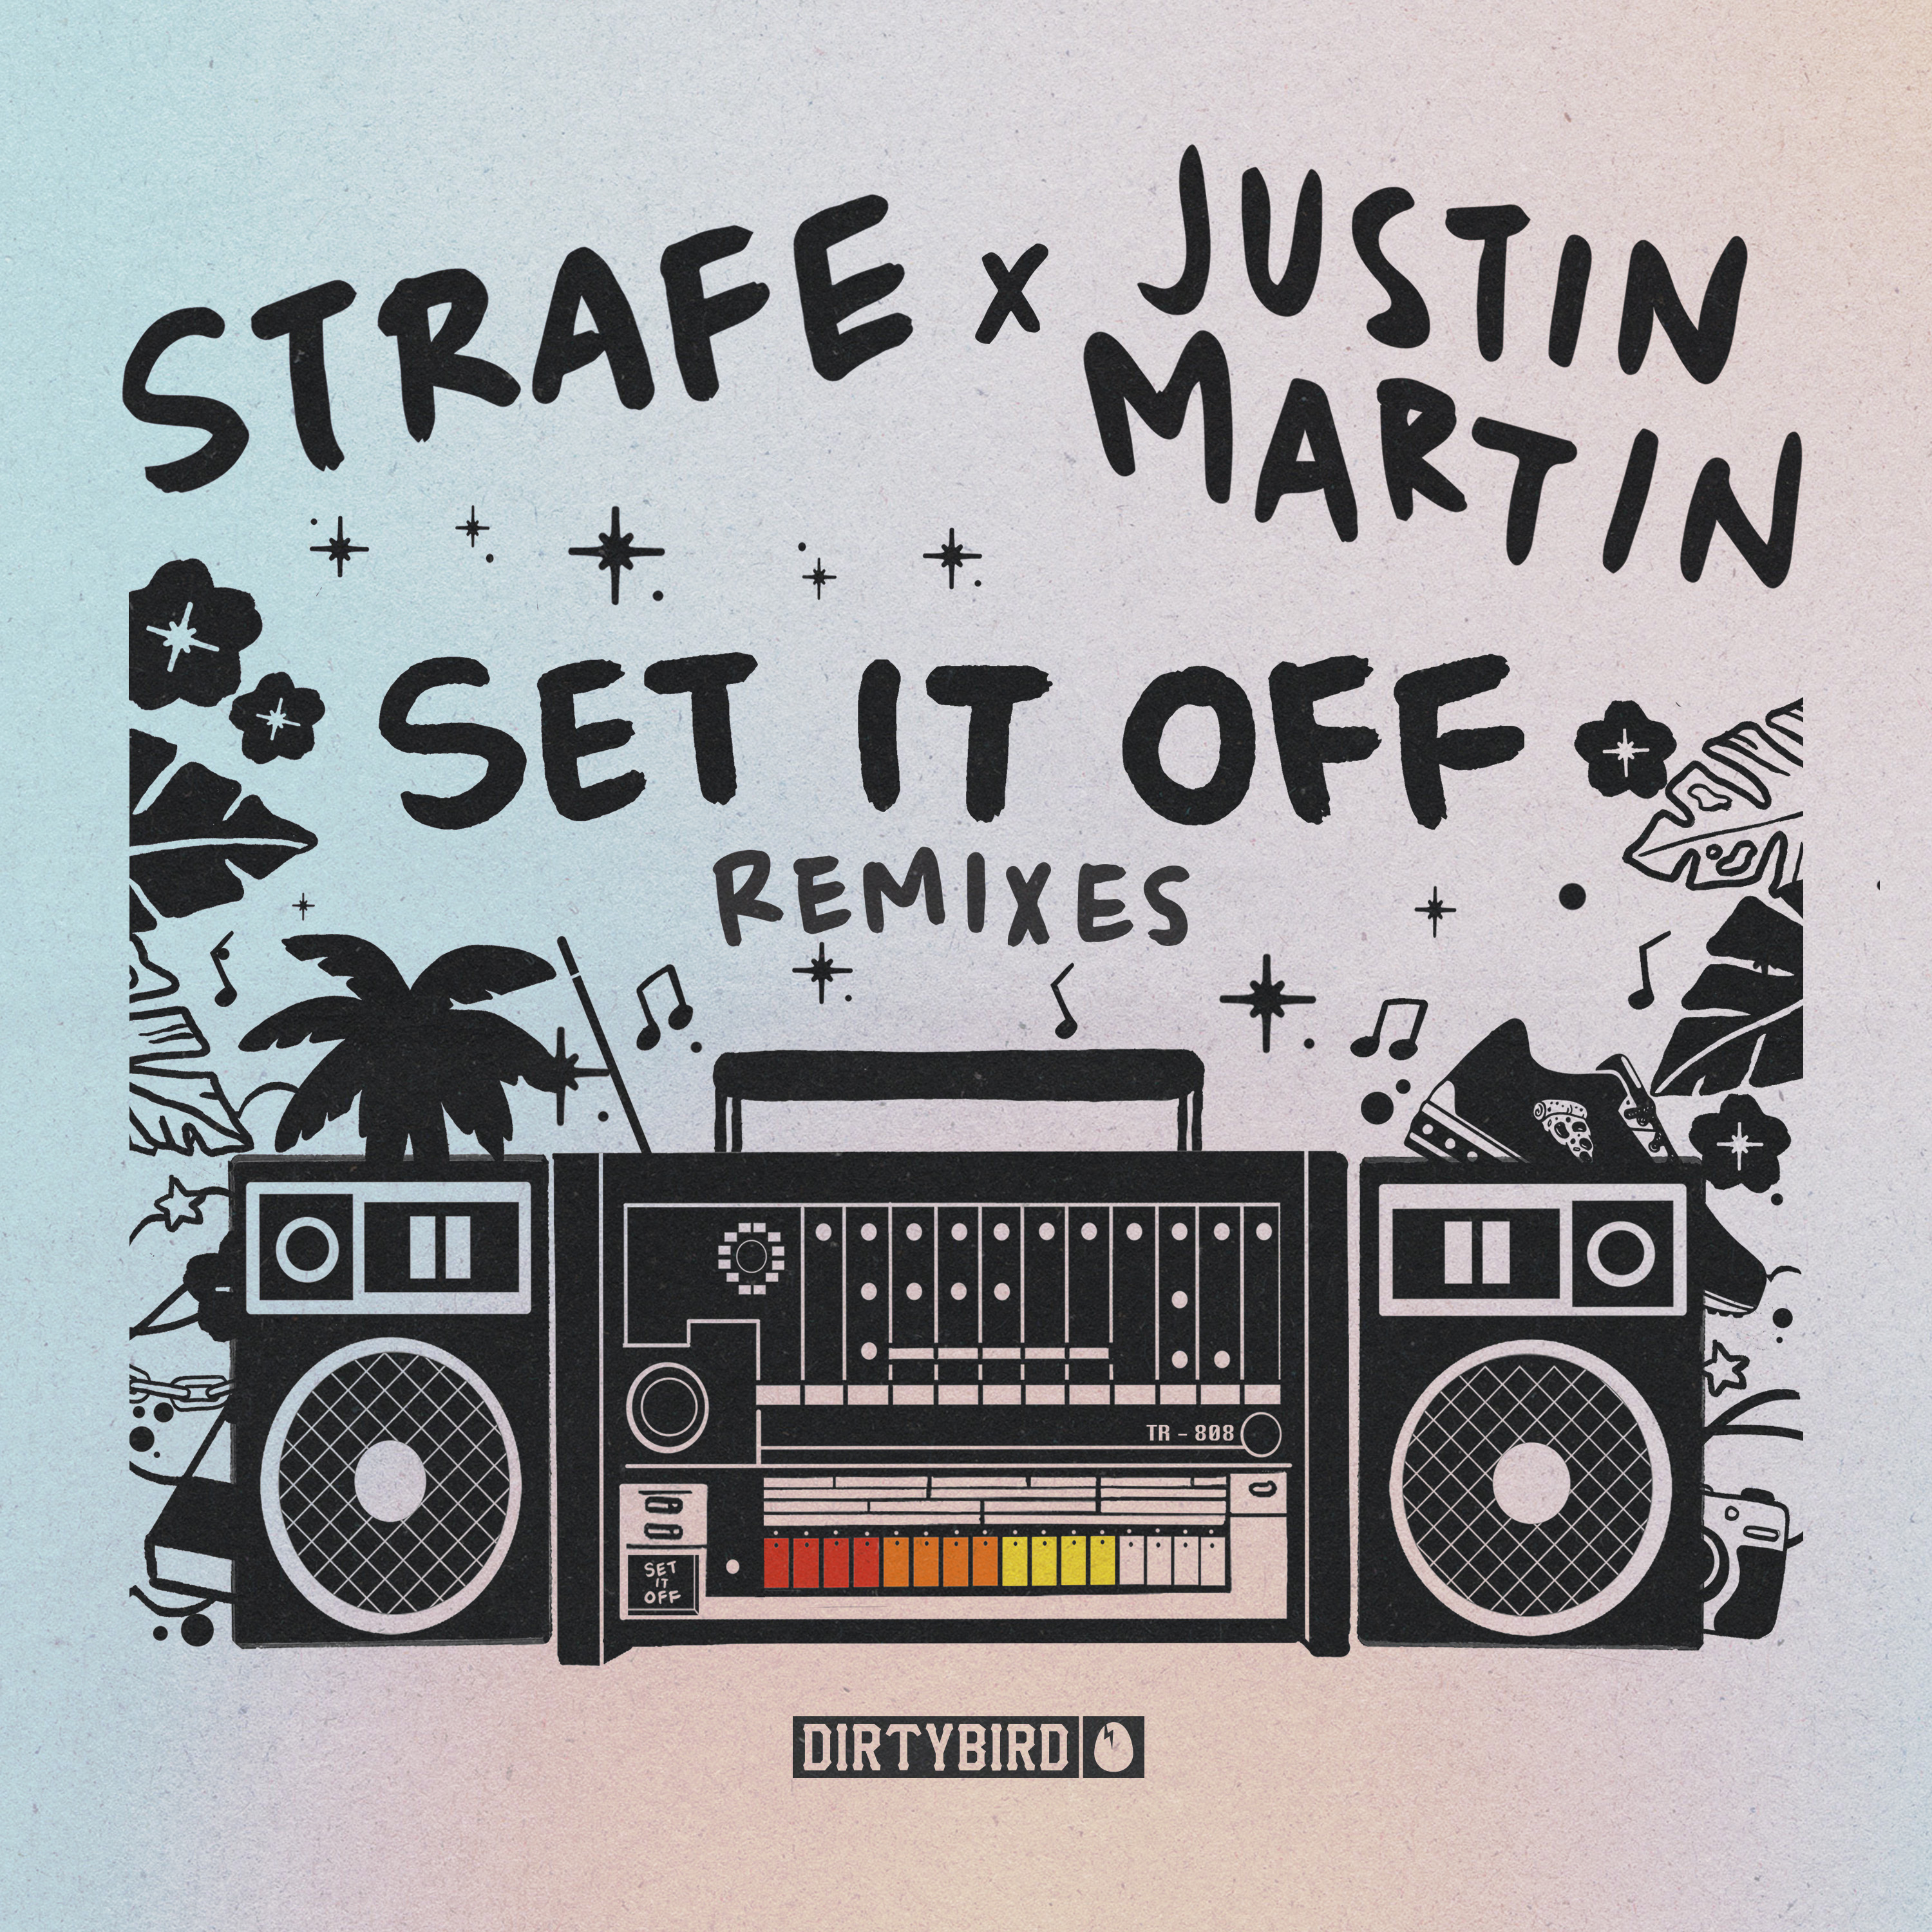 Set it off cover remixes 3000 (1)